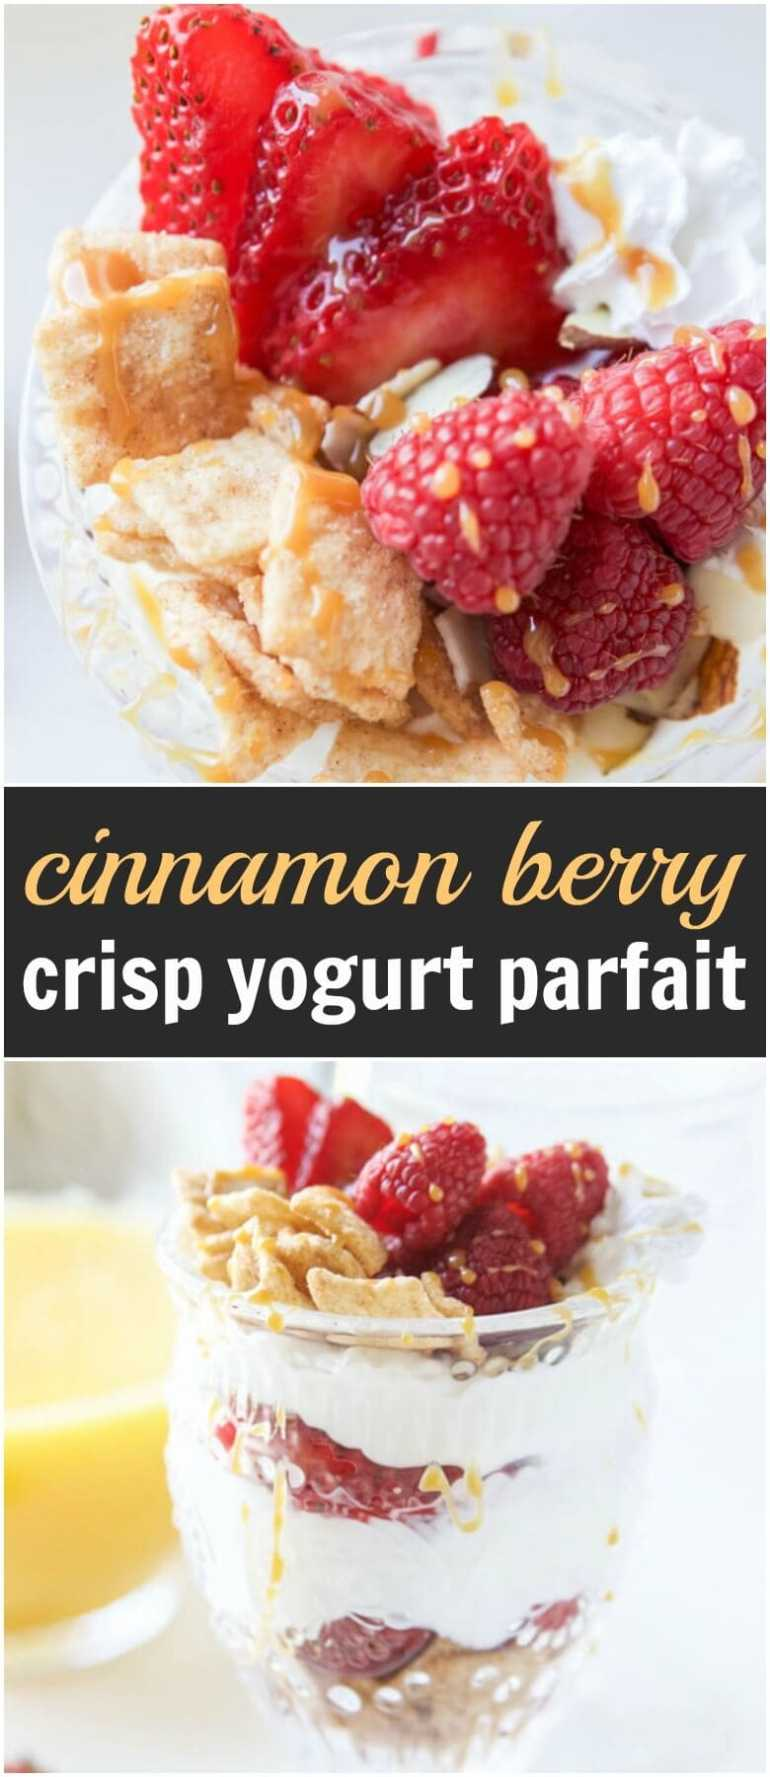 A breakfast mashup you've never had before. Cinnamon berry crisp yogurt parfait is a new creation that combines two of our favorite breakfast foods. ohsweetbasil.com